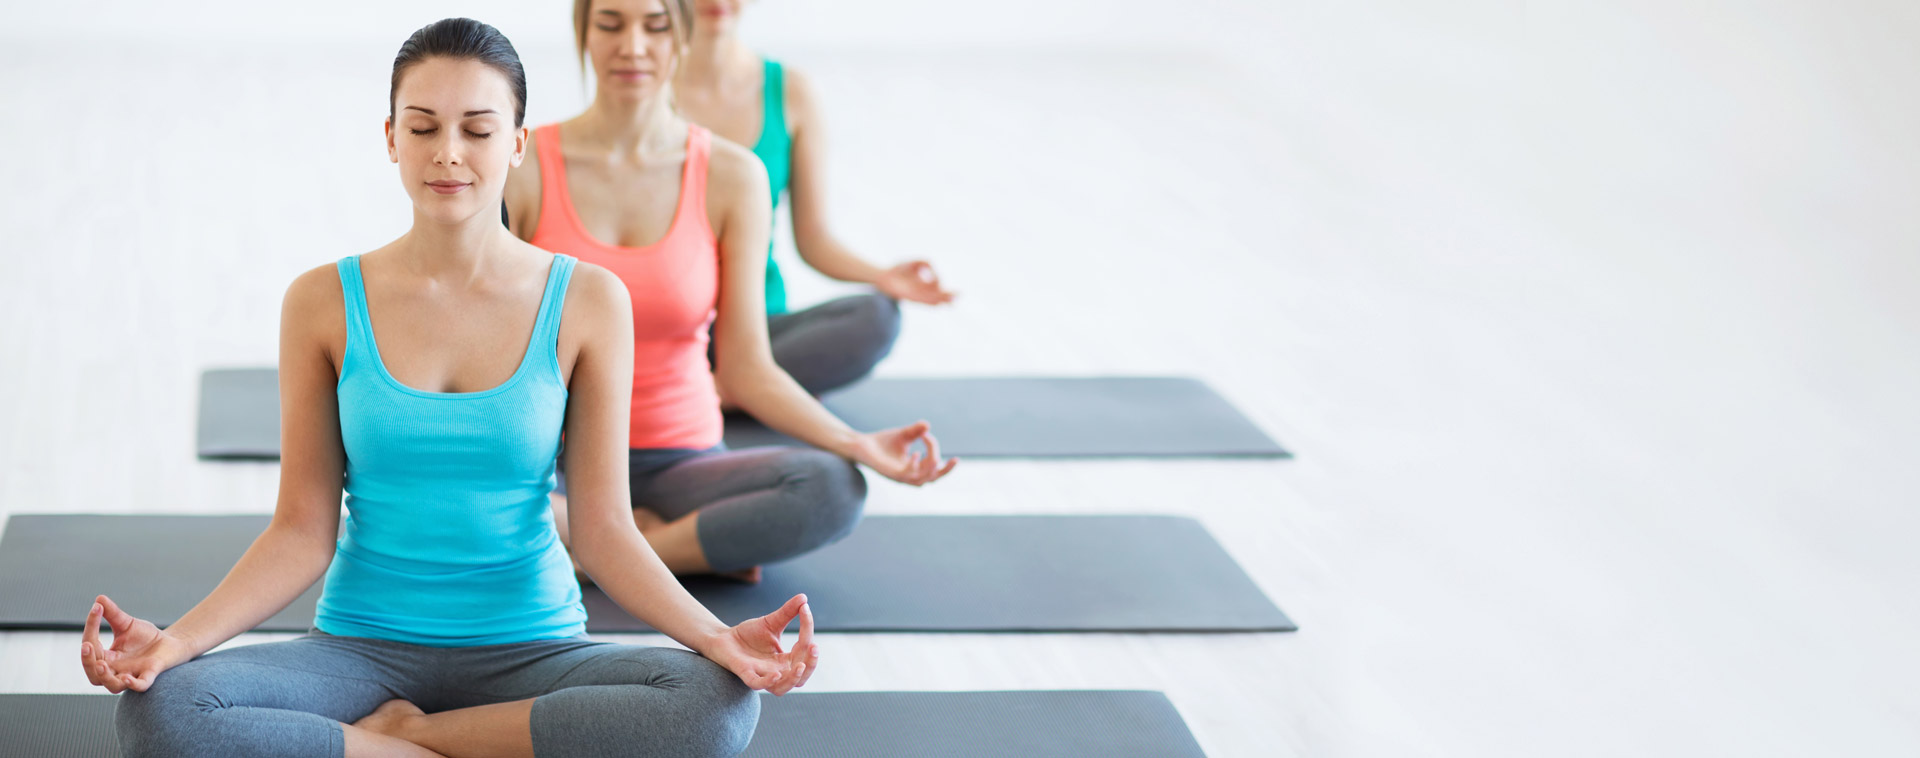 Heal your body & mind with yoga at Tanman